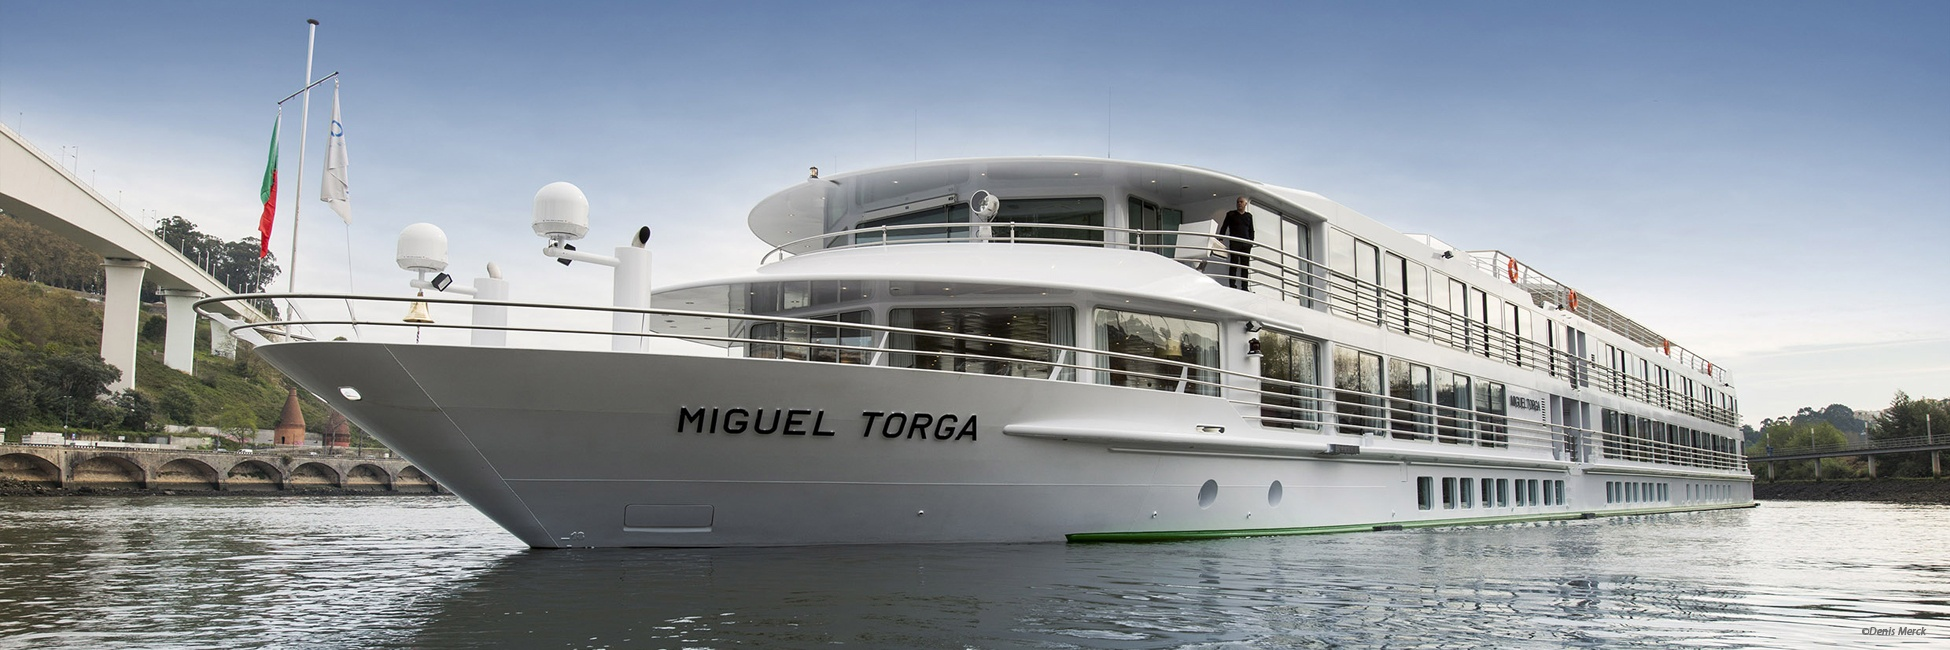 MS Miguel Torga, navire 5 ancres